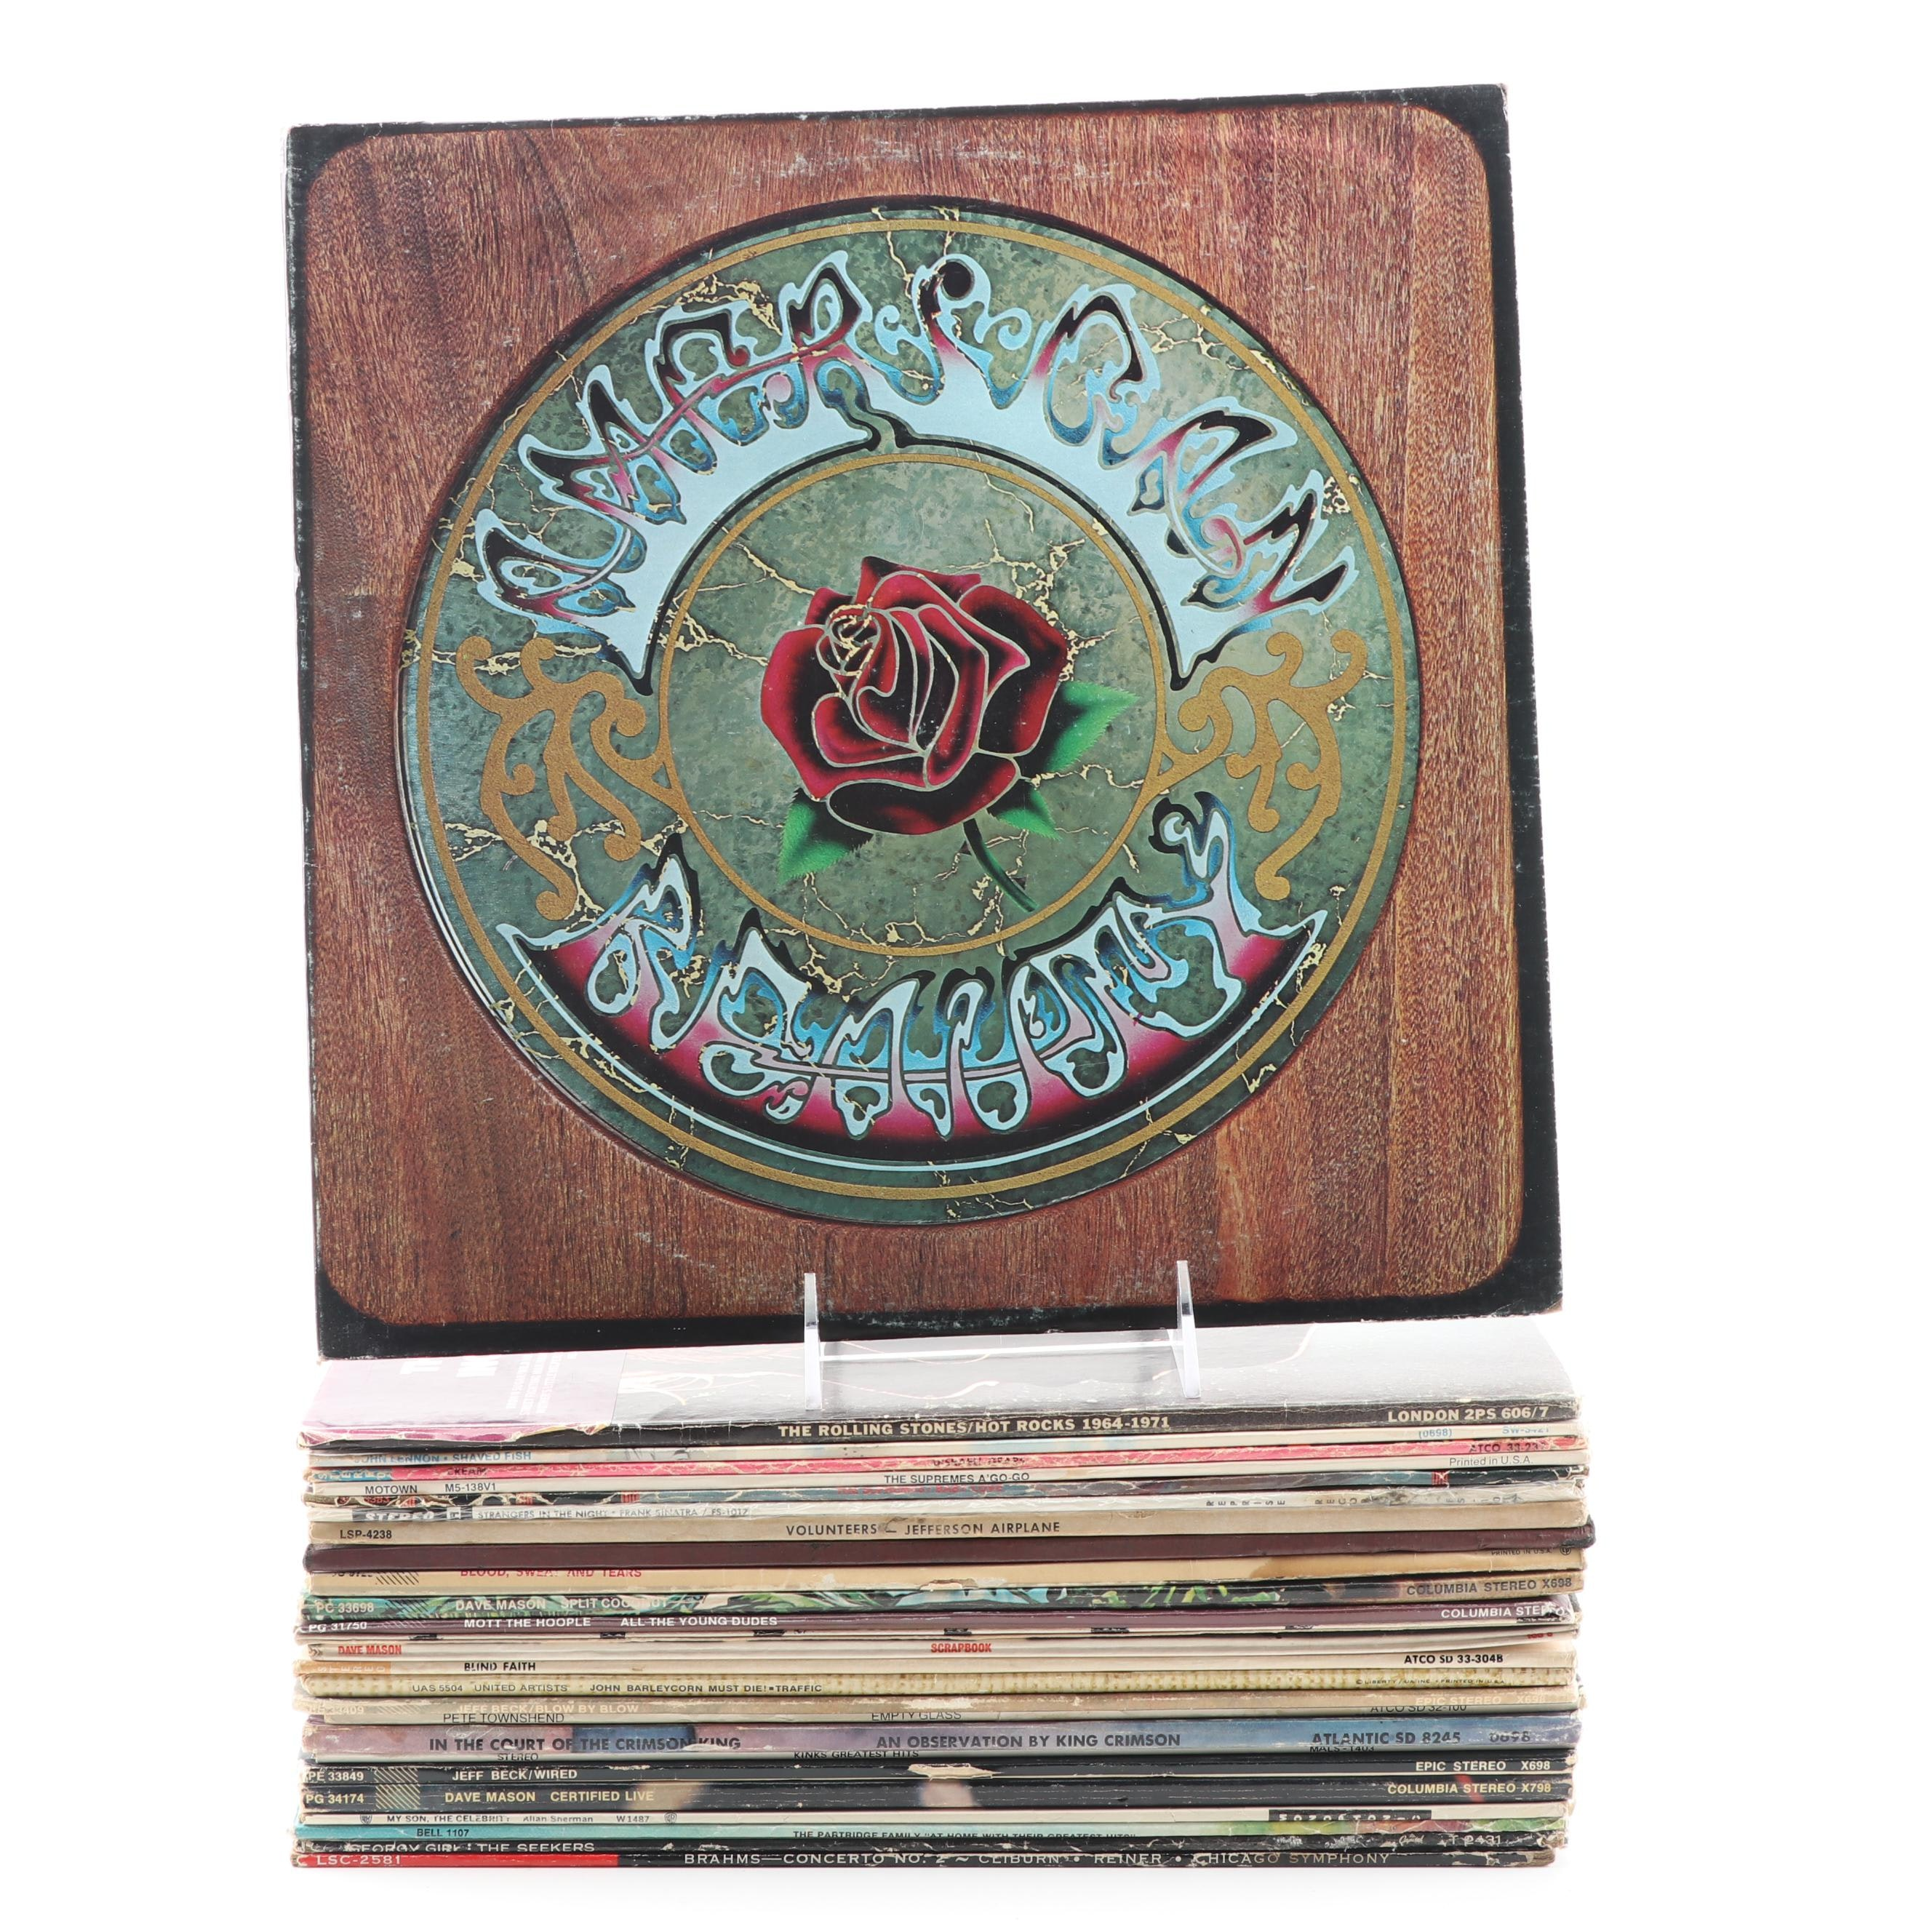 Grateful Dead, Stones, Cream, Traffic, King Crimson and Other Rock Records